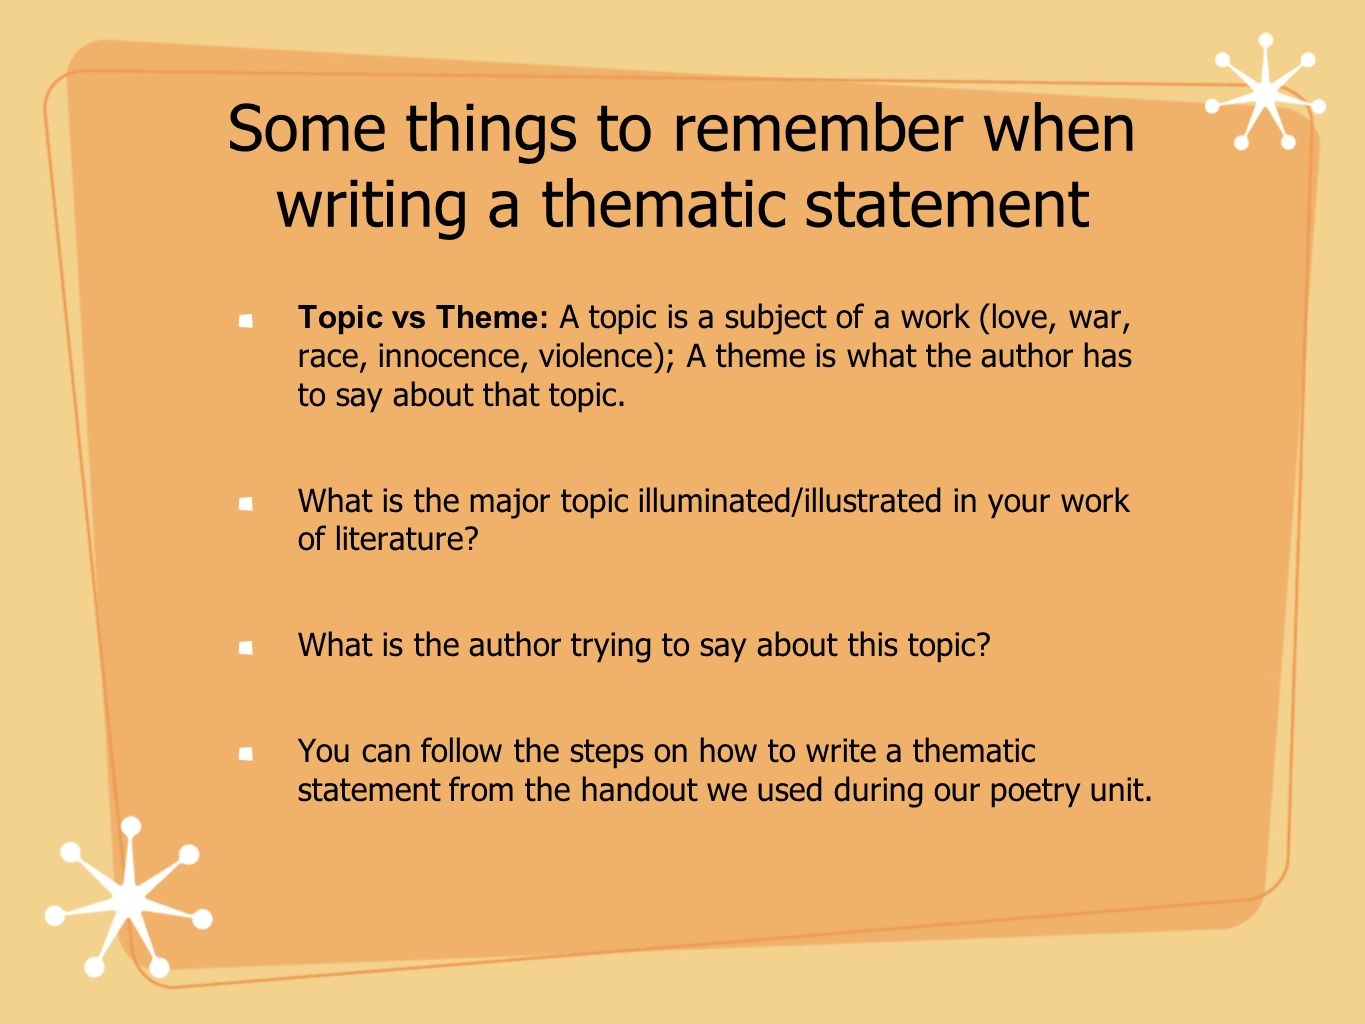 Some things to remember when writing a thematic statement